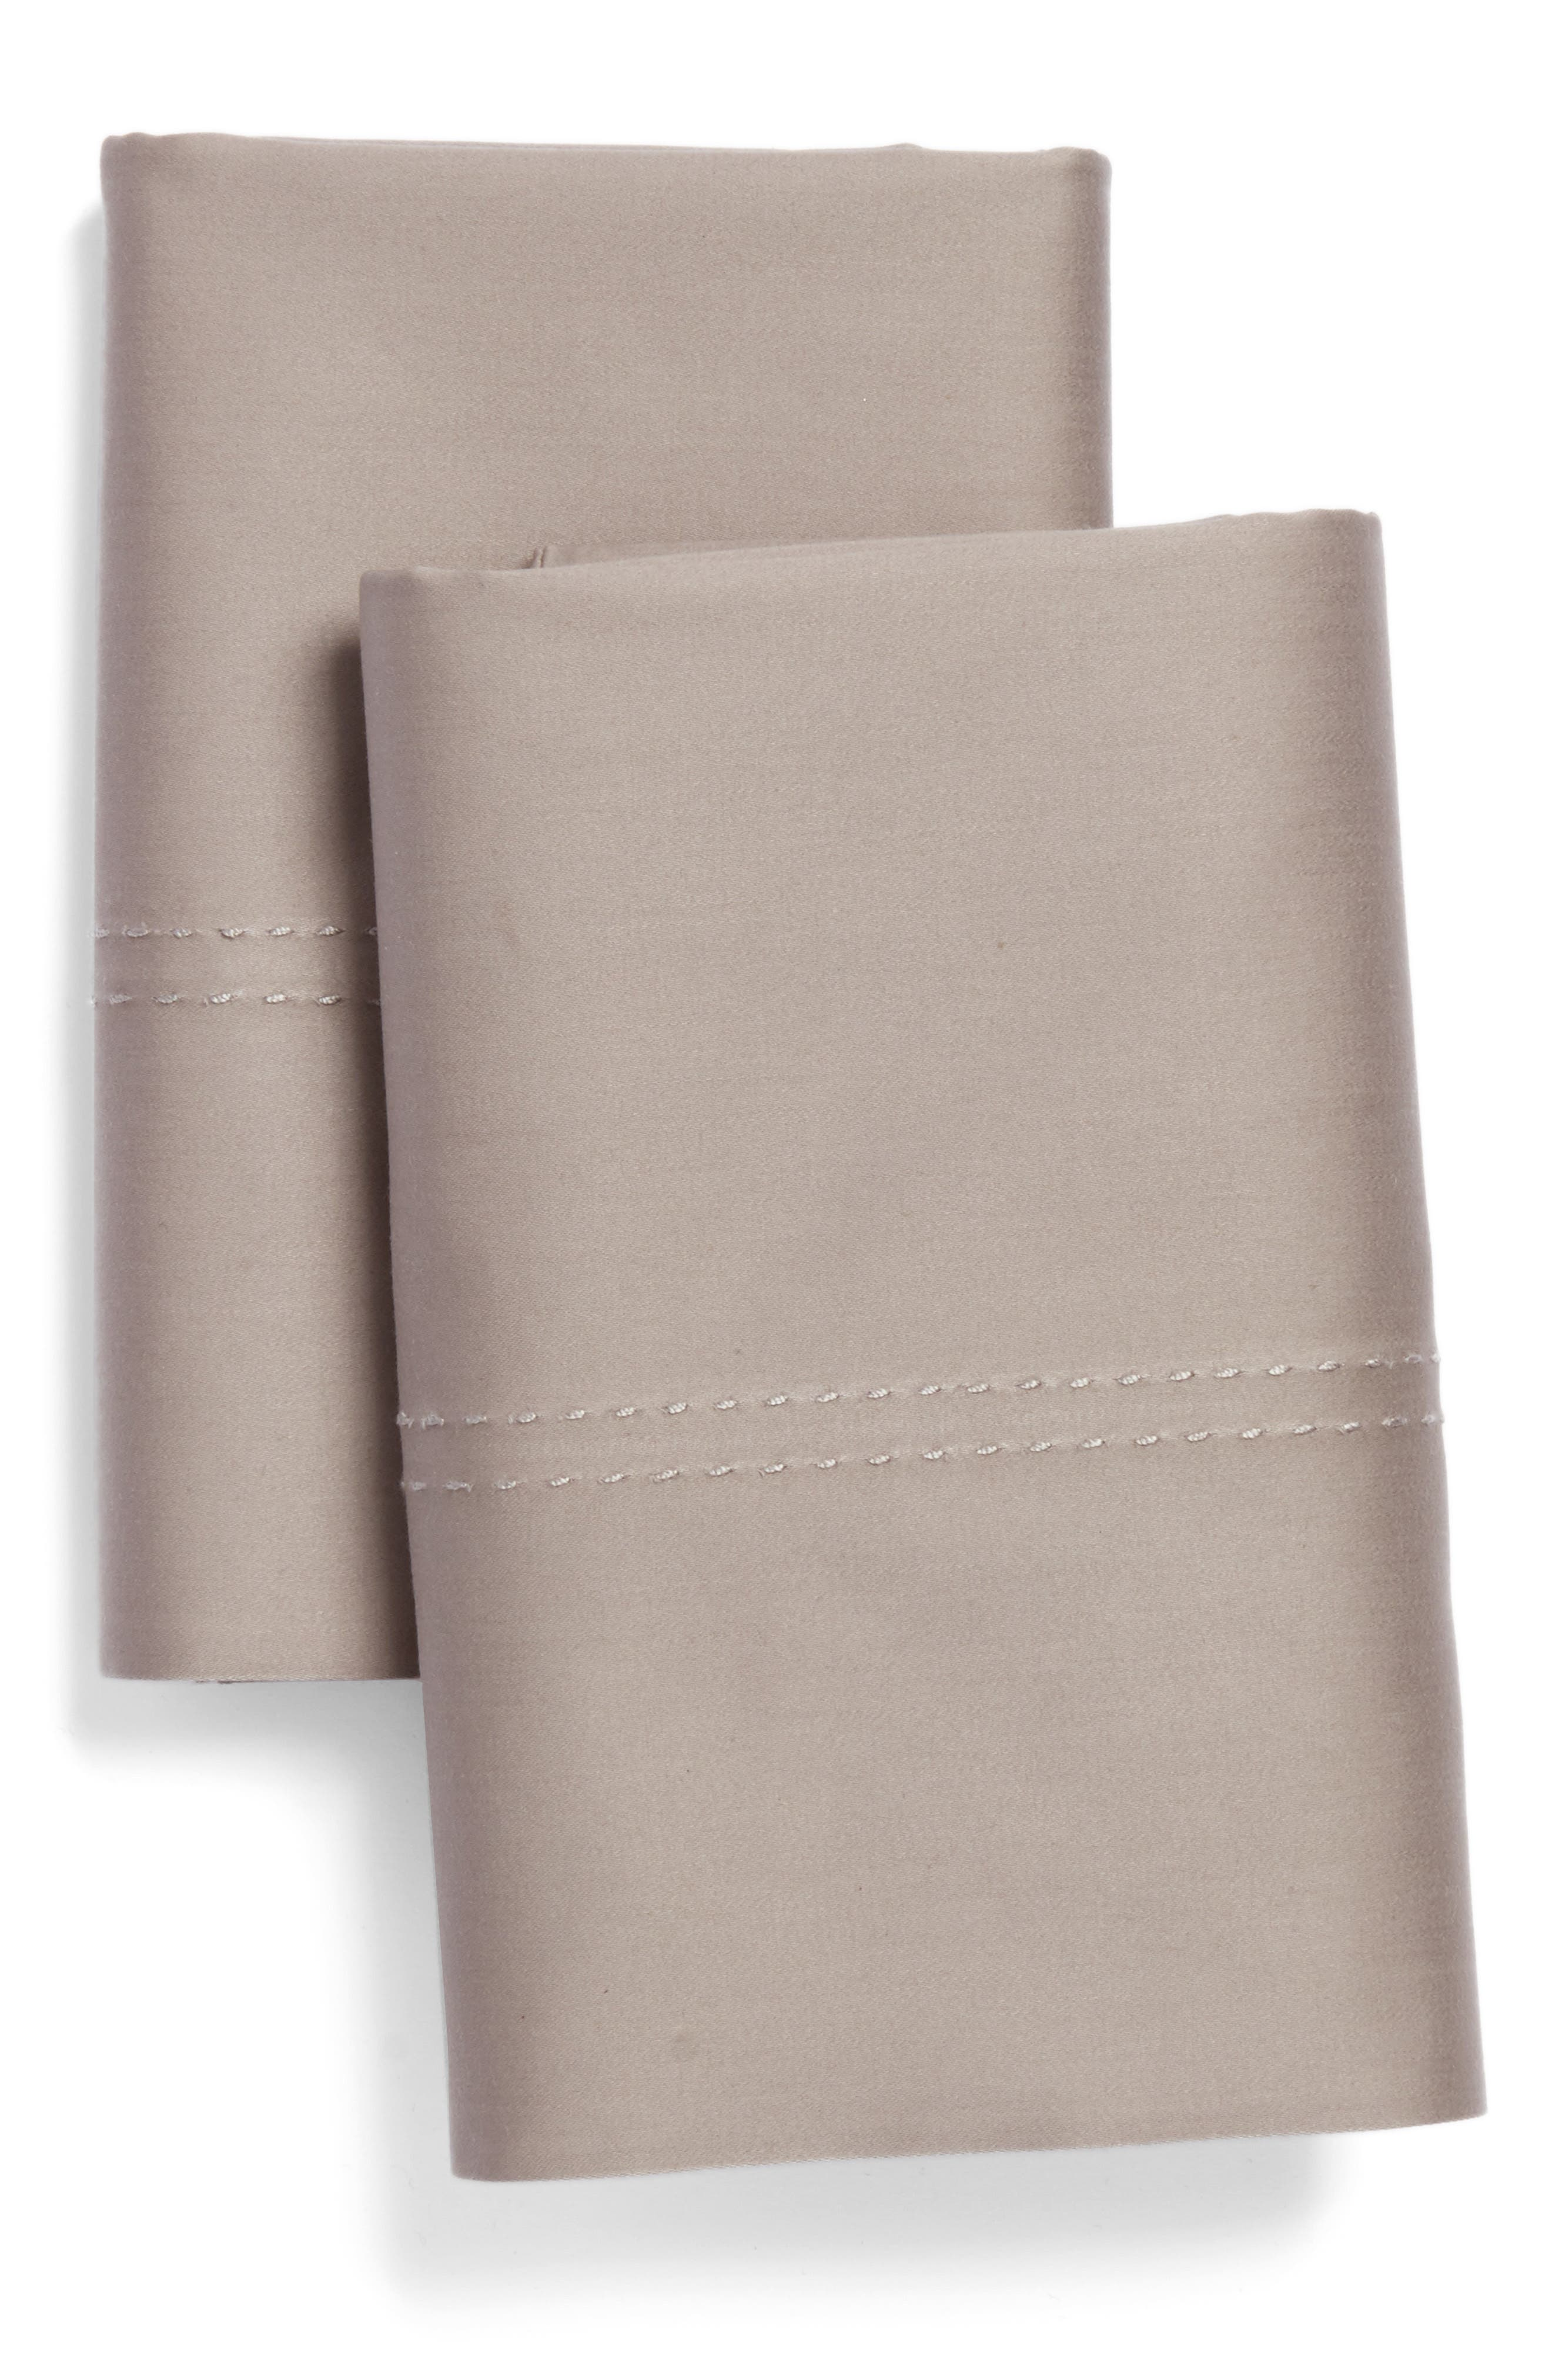 Nordstrom at Home 400 Thread Count Organic Cotton Pillowcases